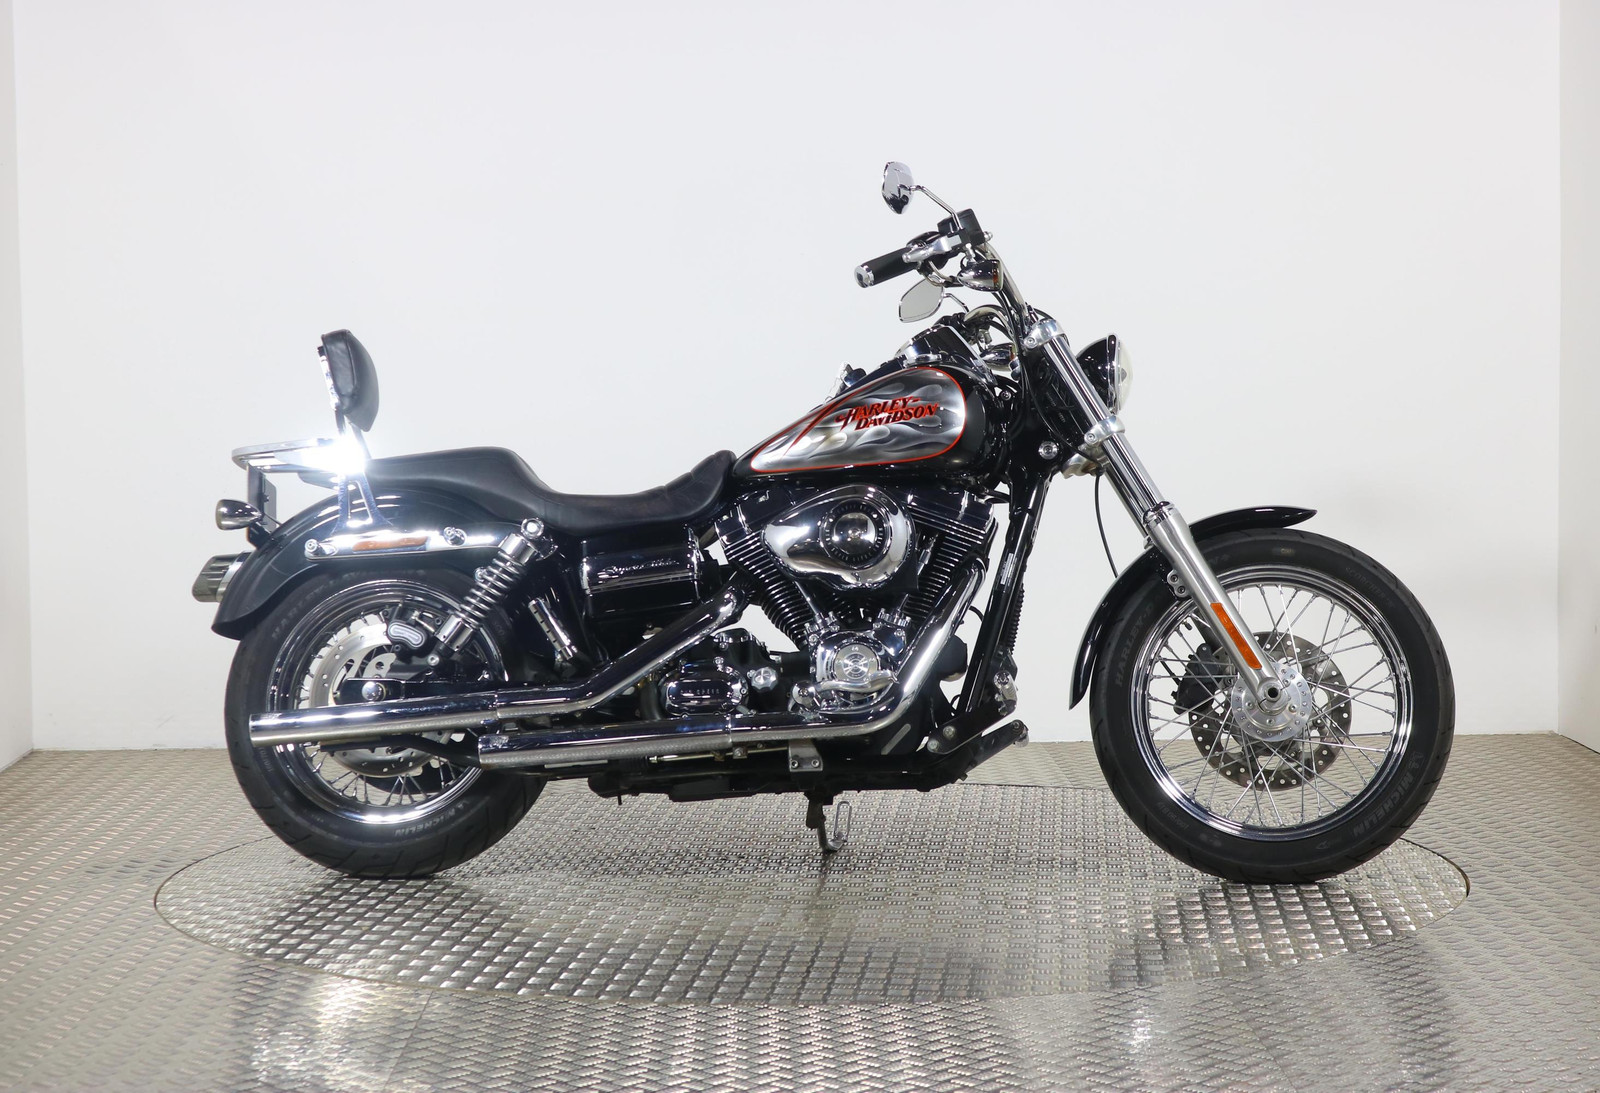 2009 Harley Davidson Dyna Fxdc Dyna Super Glide Custom Black With 9961 Miles Used Motorbikes Dealer Macclesfield Cheshire The Superbike Factory